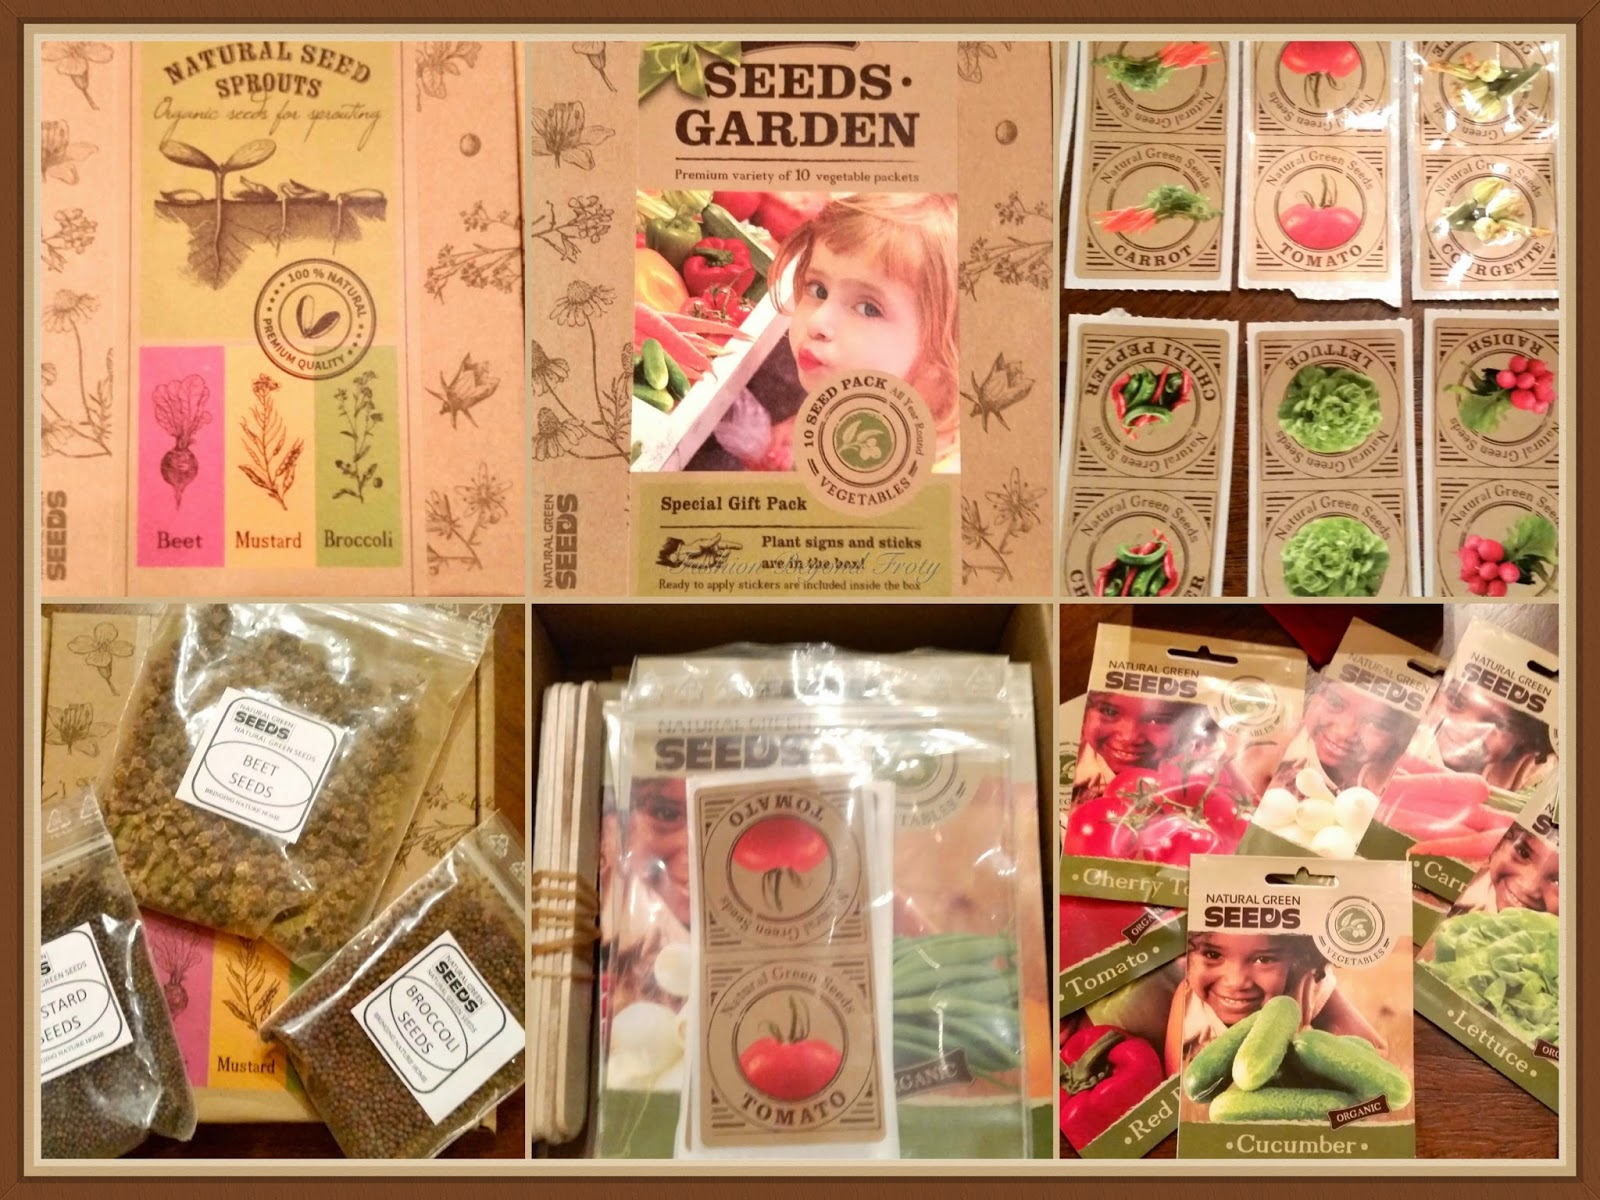 Organic Garden Seeds and Sprouting Kits